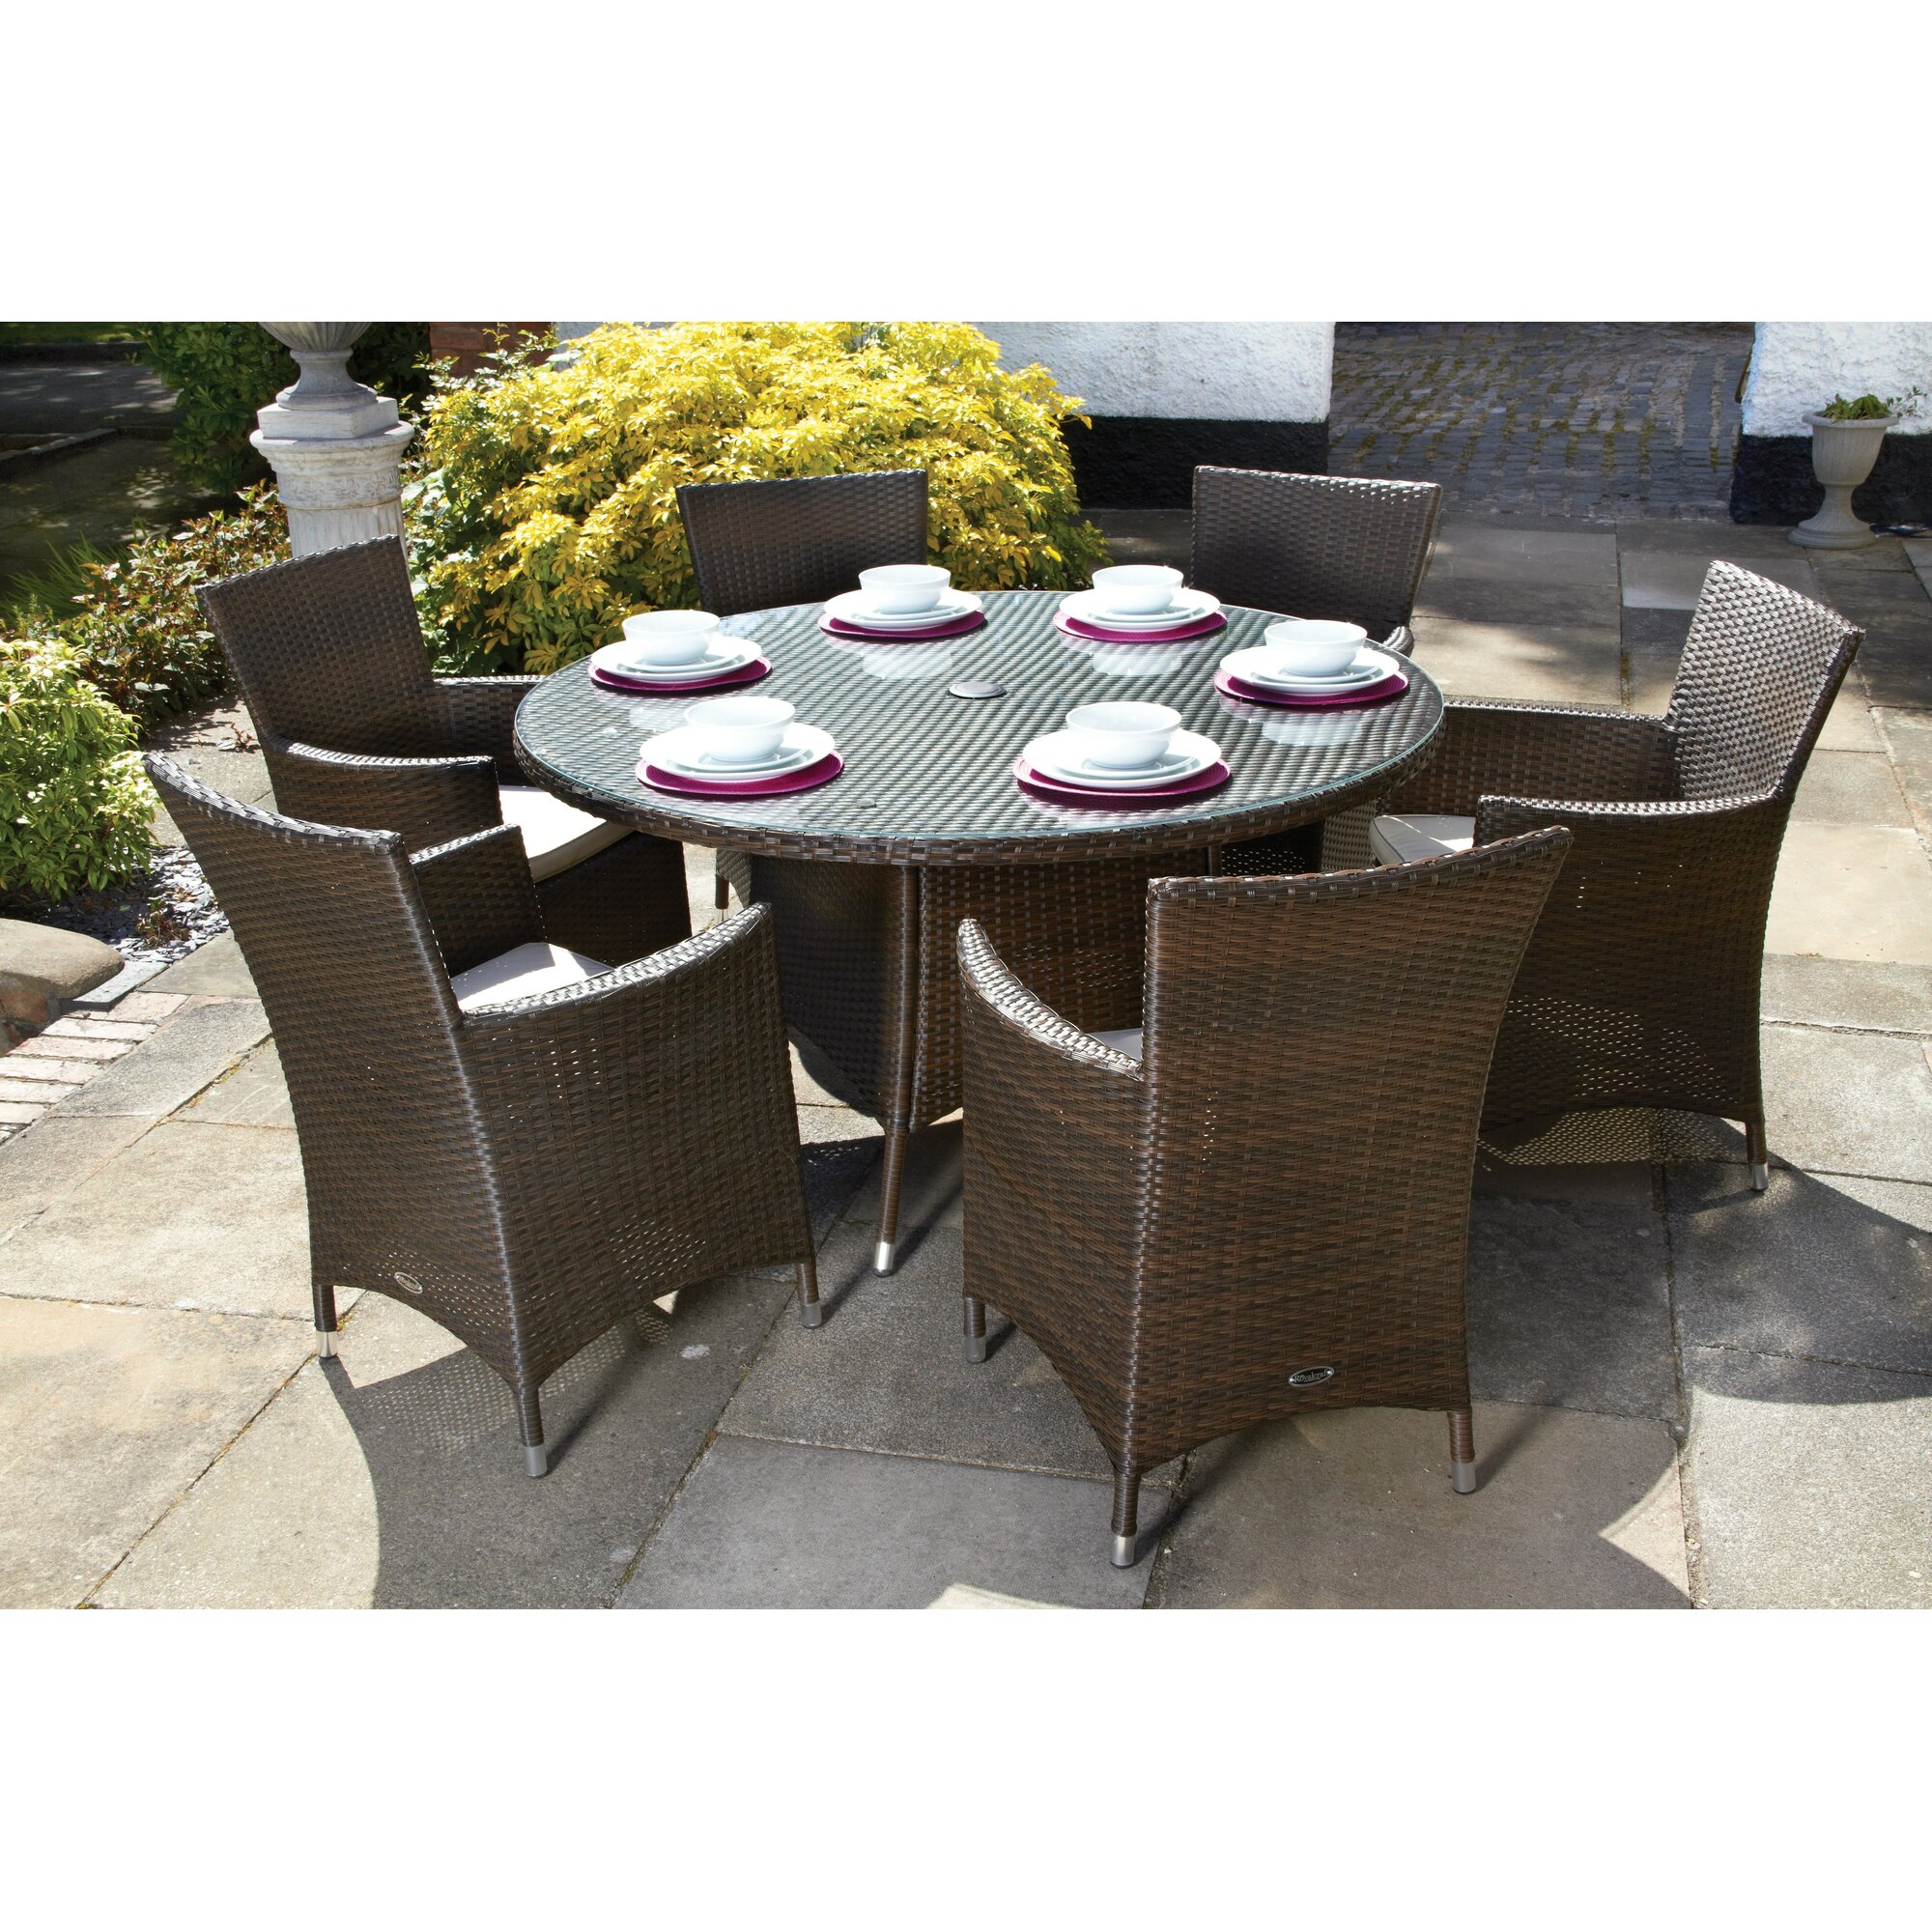 Cannes 6 Seater Dining Set with Cushions. Royal Craft Cannes 6 Seater Dining Set with Cushions   Reviews